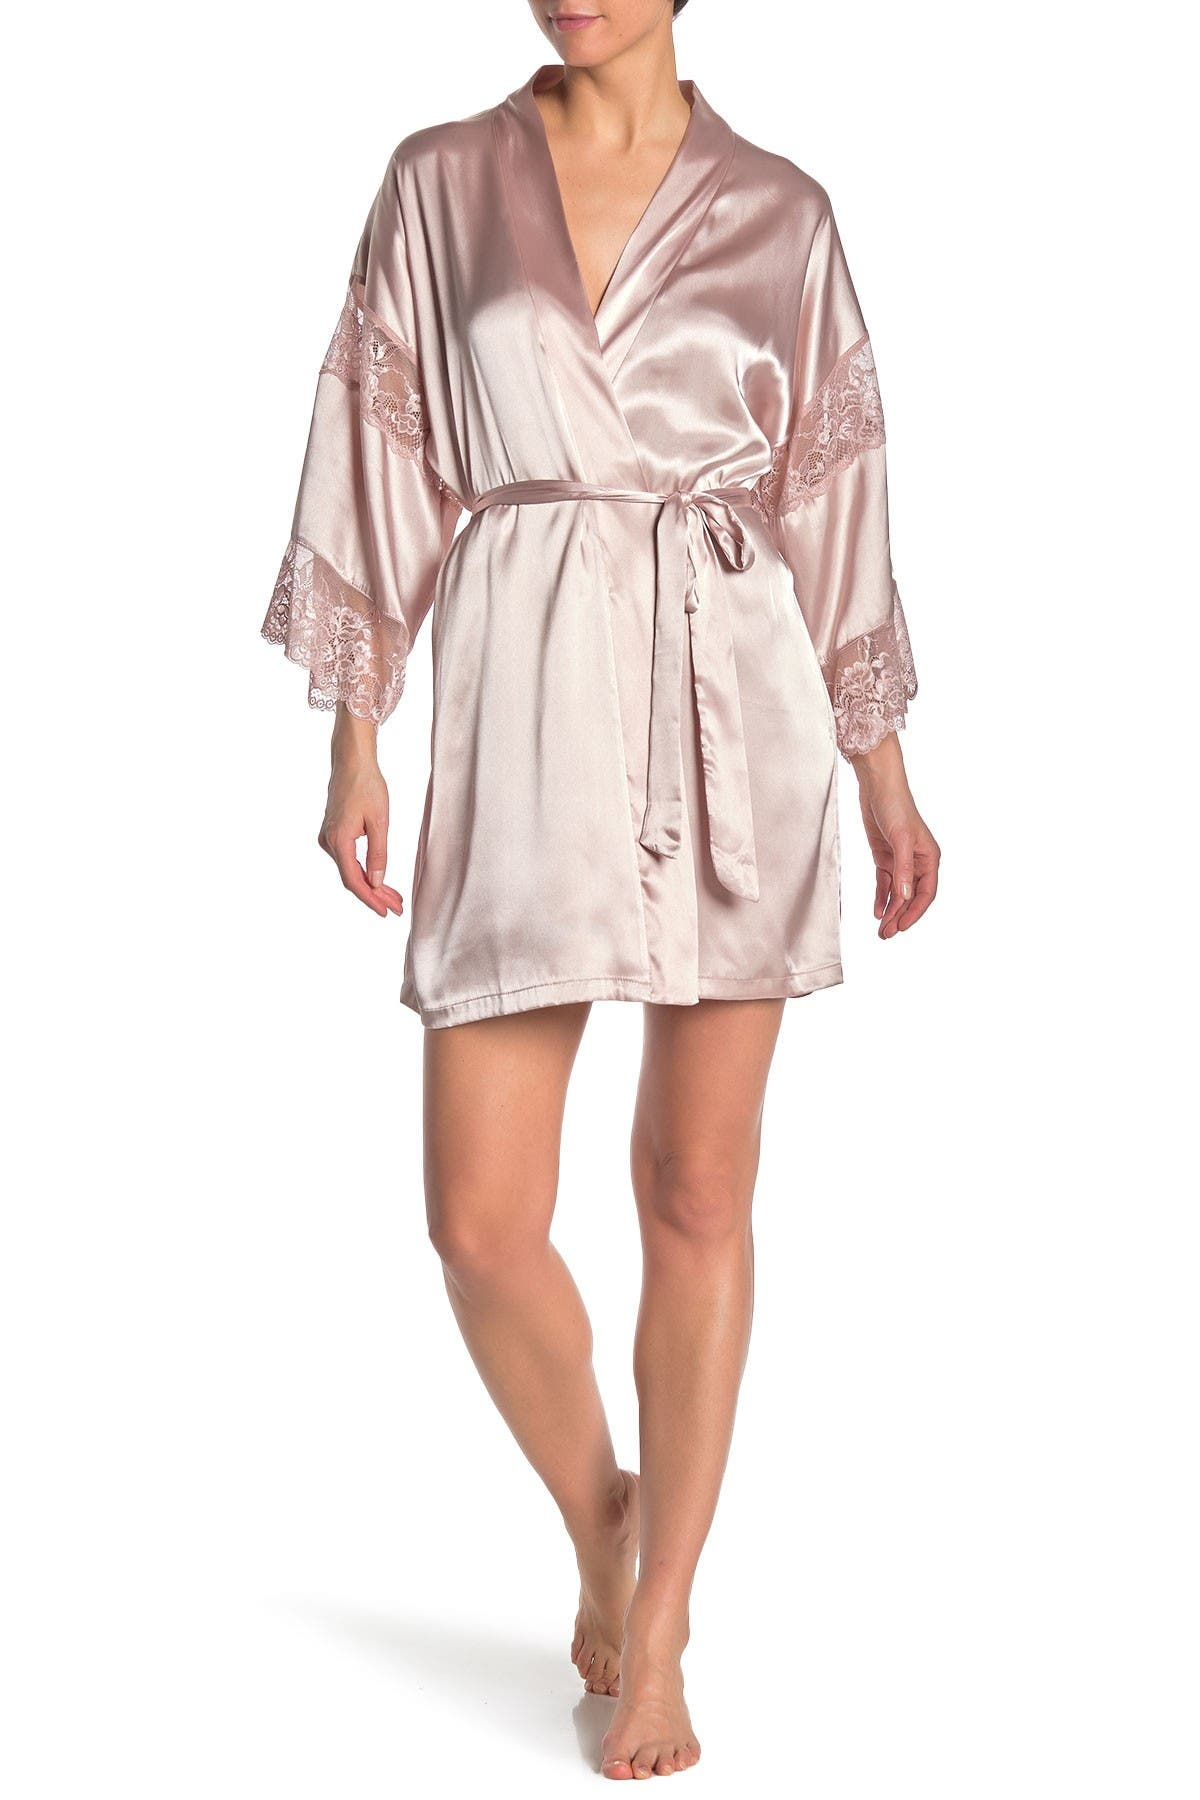 Image of In Bloom by Jonquil Lace Trim Satin Wrap Robe